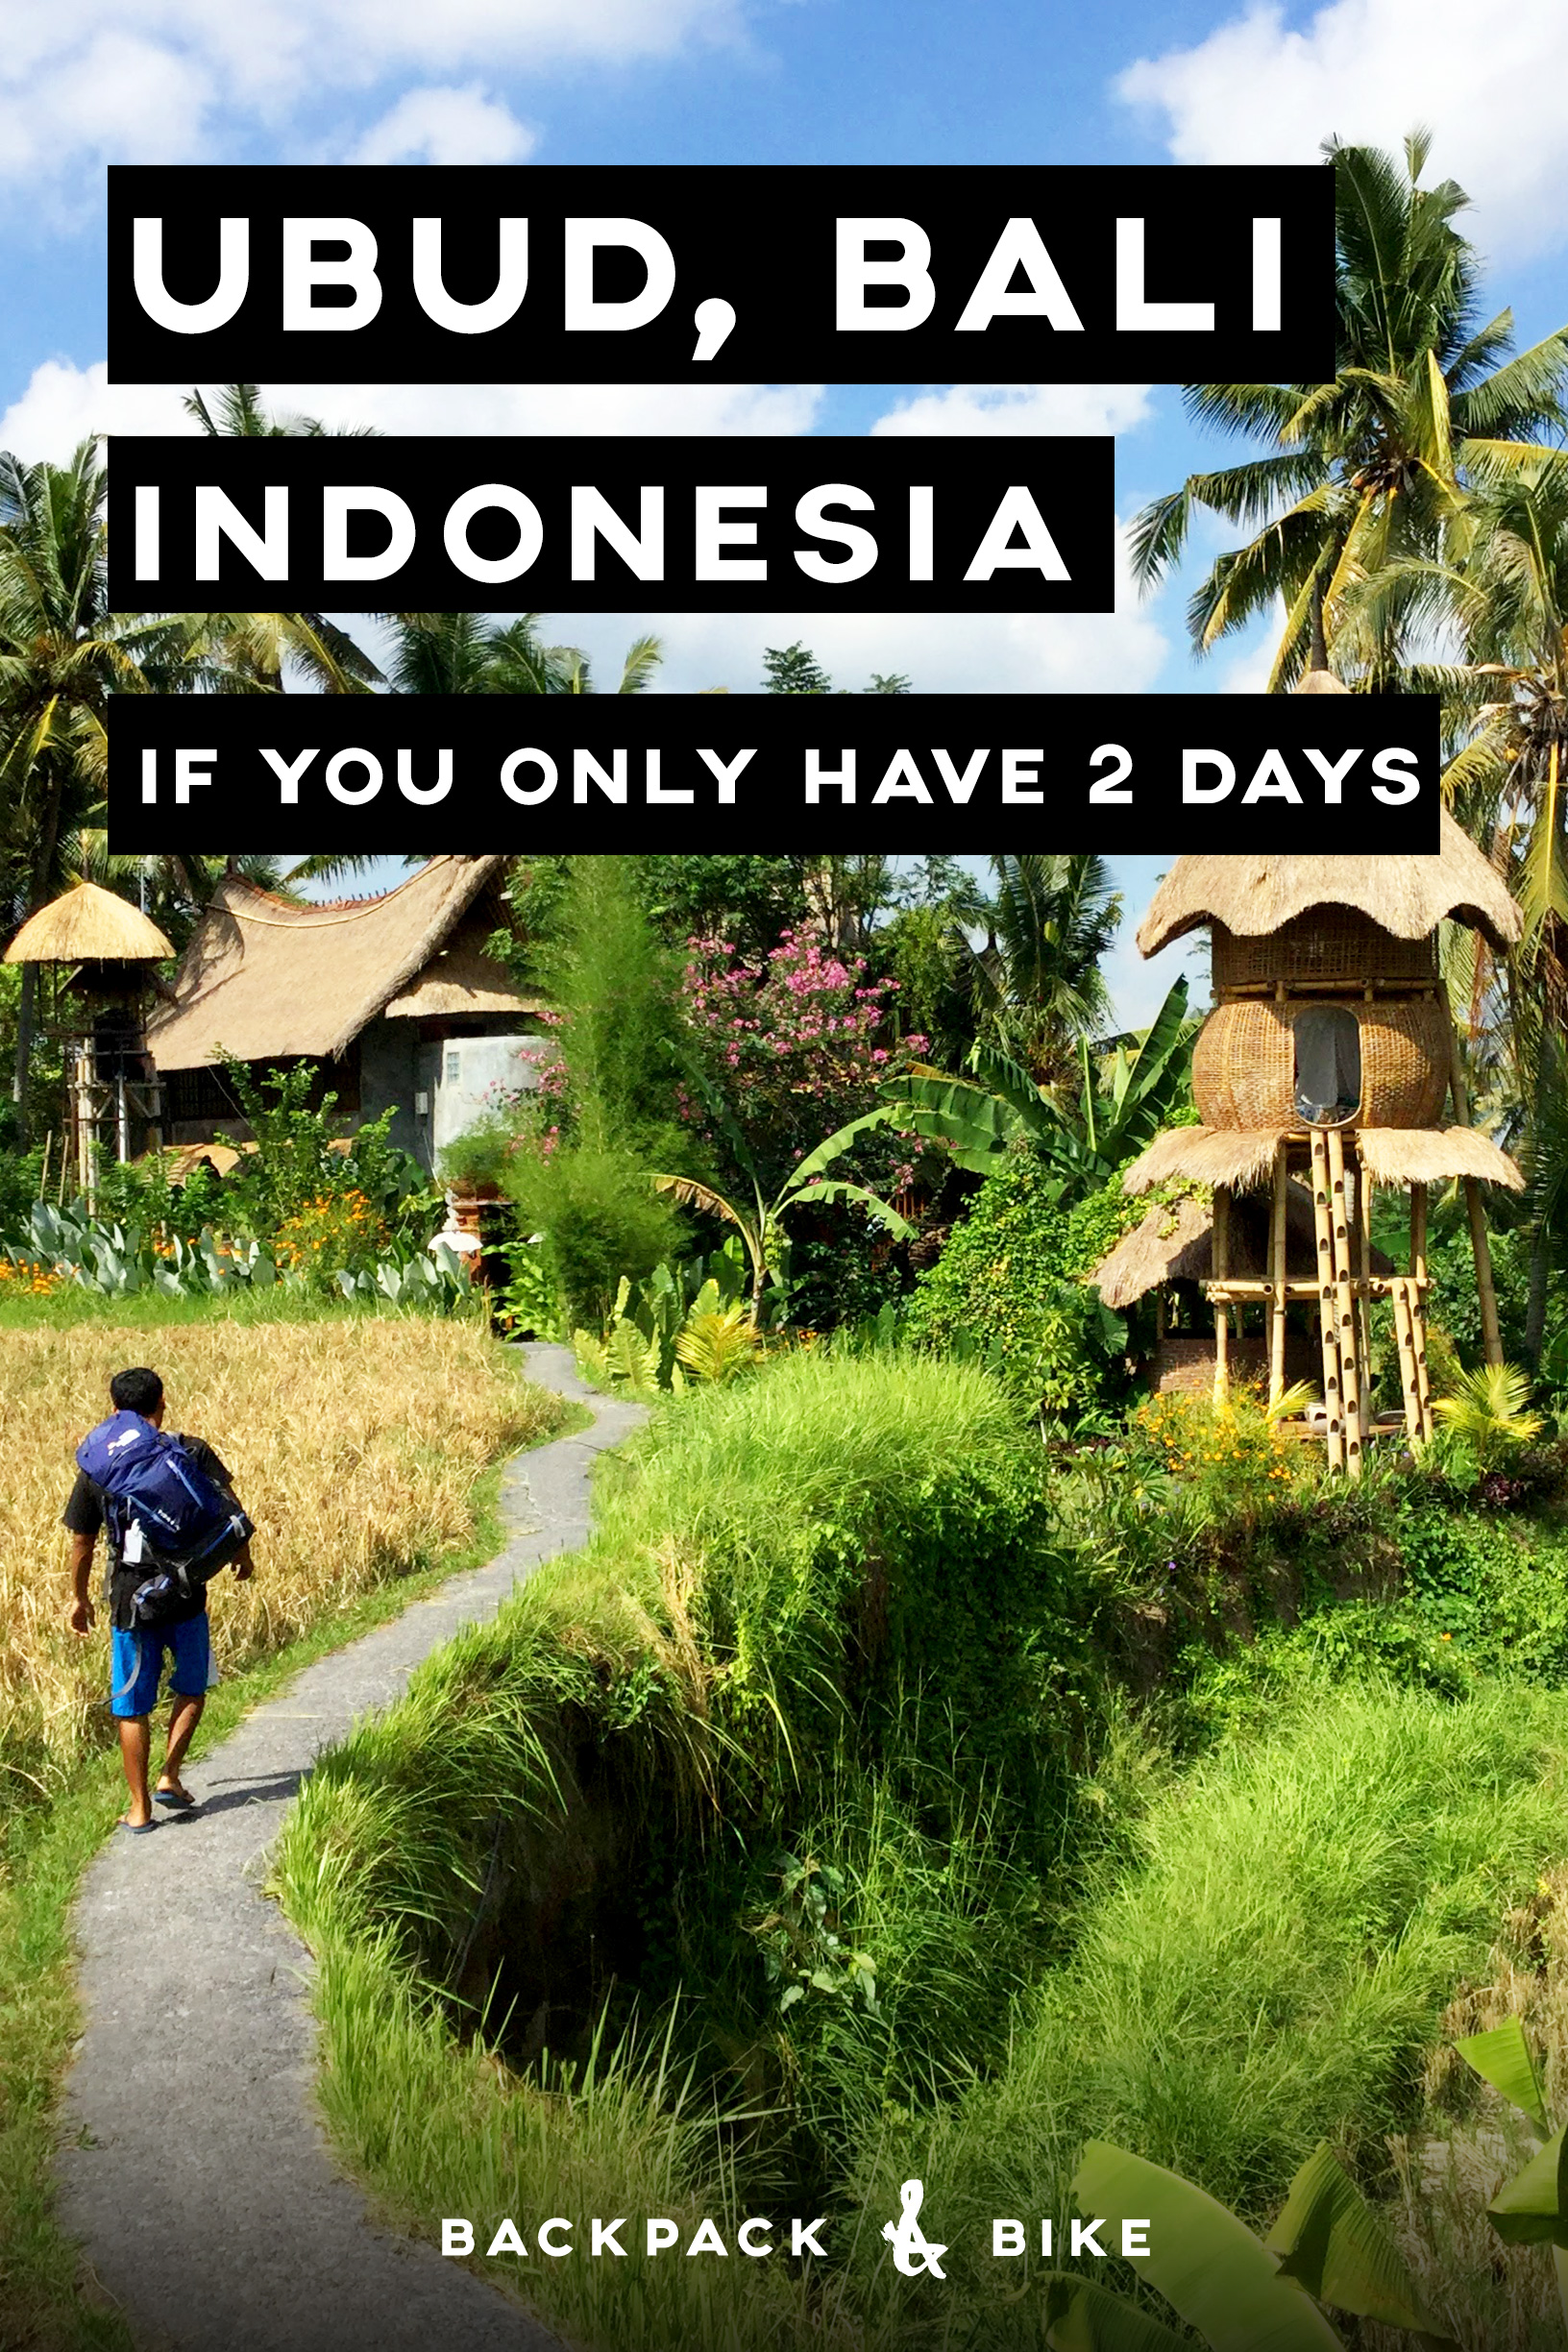 Visiting Ubud Bali If You Only Have 2 Days Backpack Amp Bike